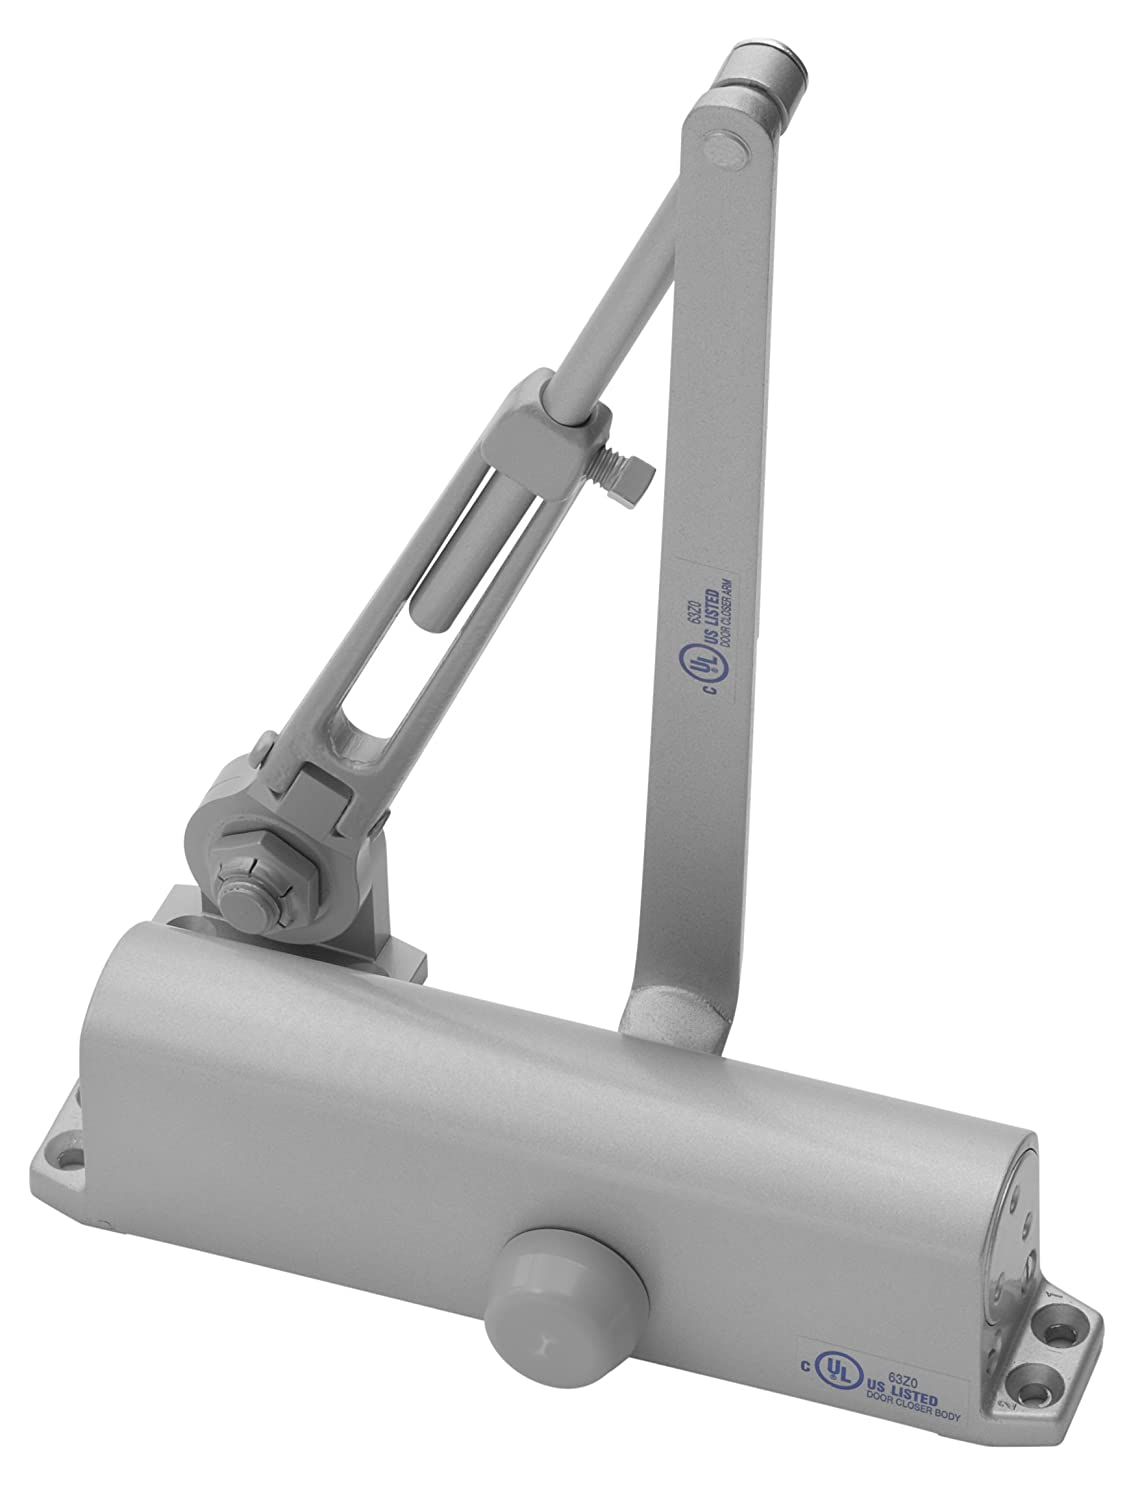 Yale 1111BF x 689 Door Closers, Aluminum Body, 689 Painted Aluminum Finish, Hold Open Arm, Door Sizes 1 to 4